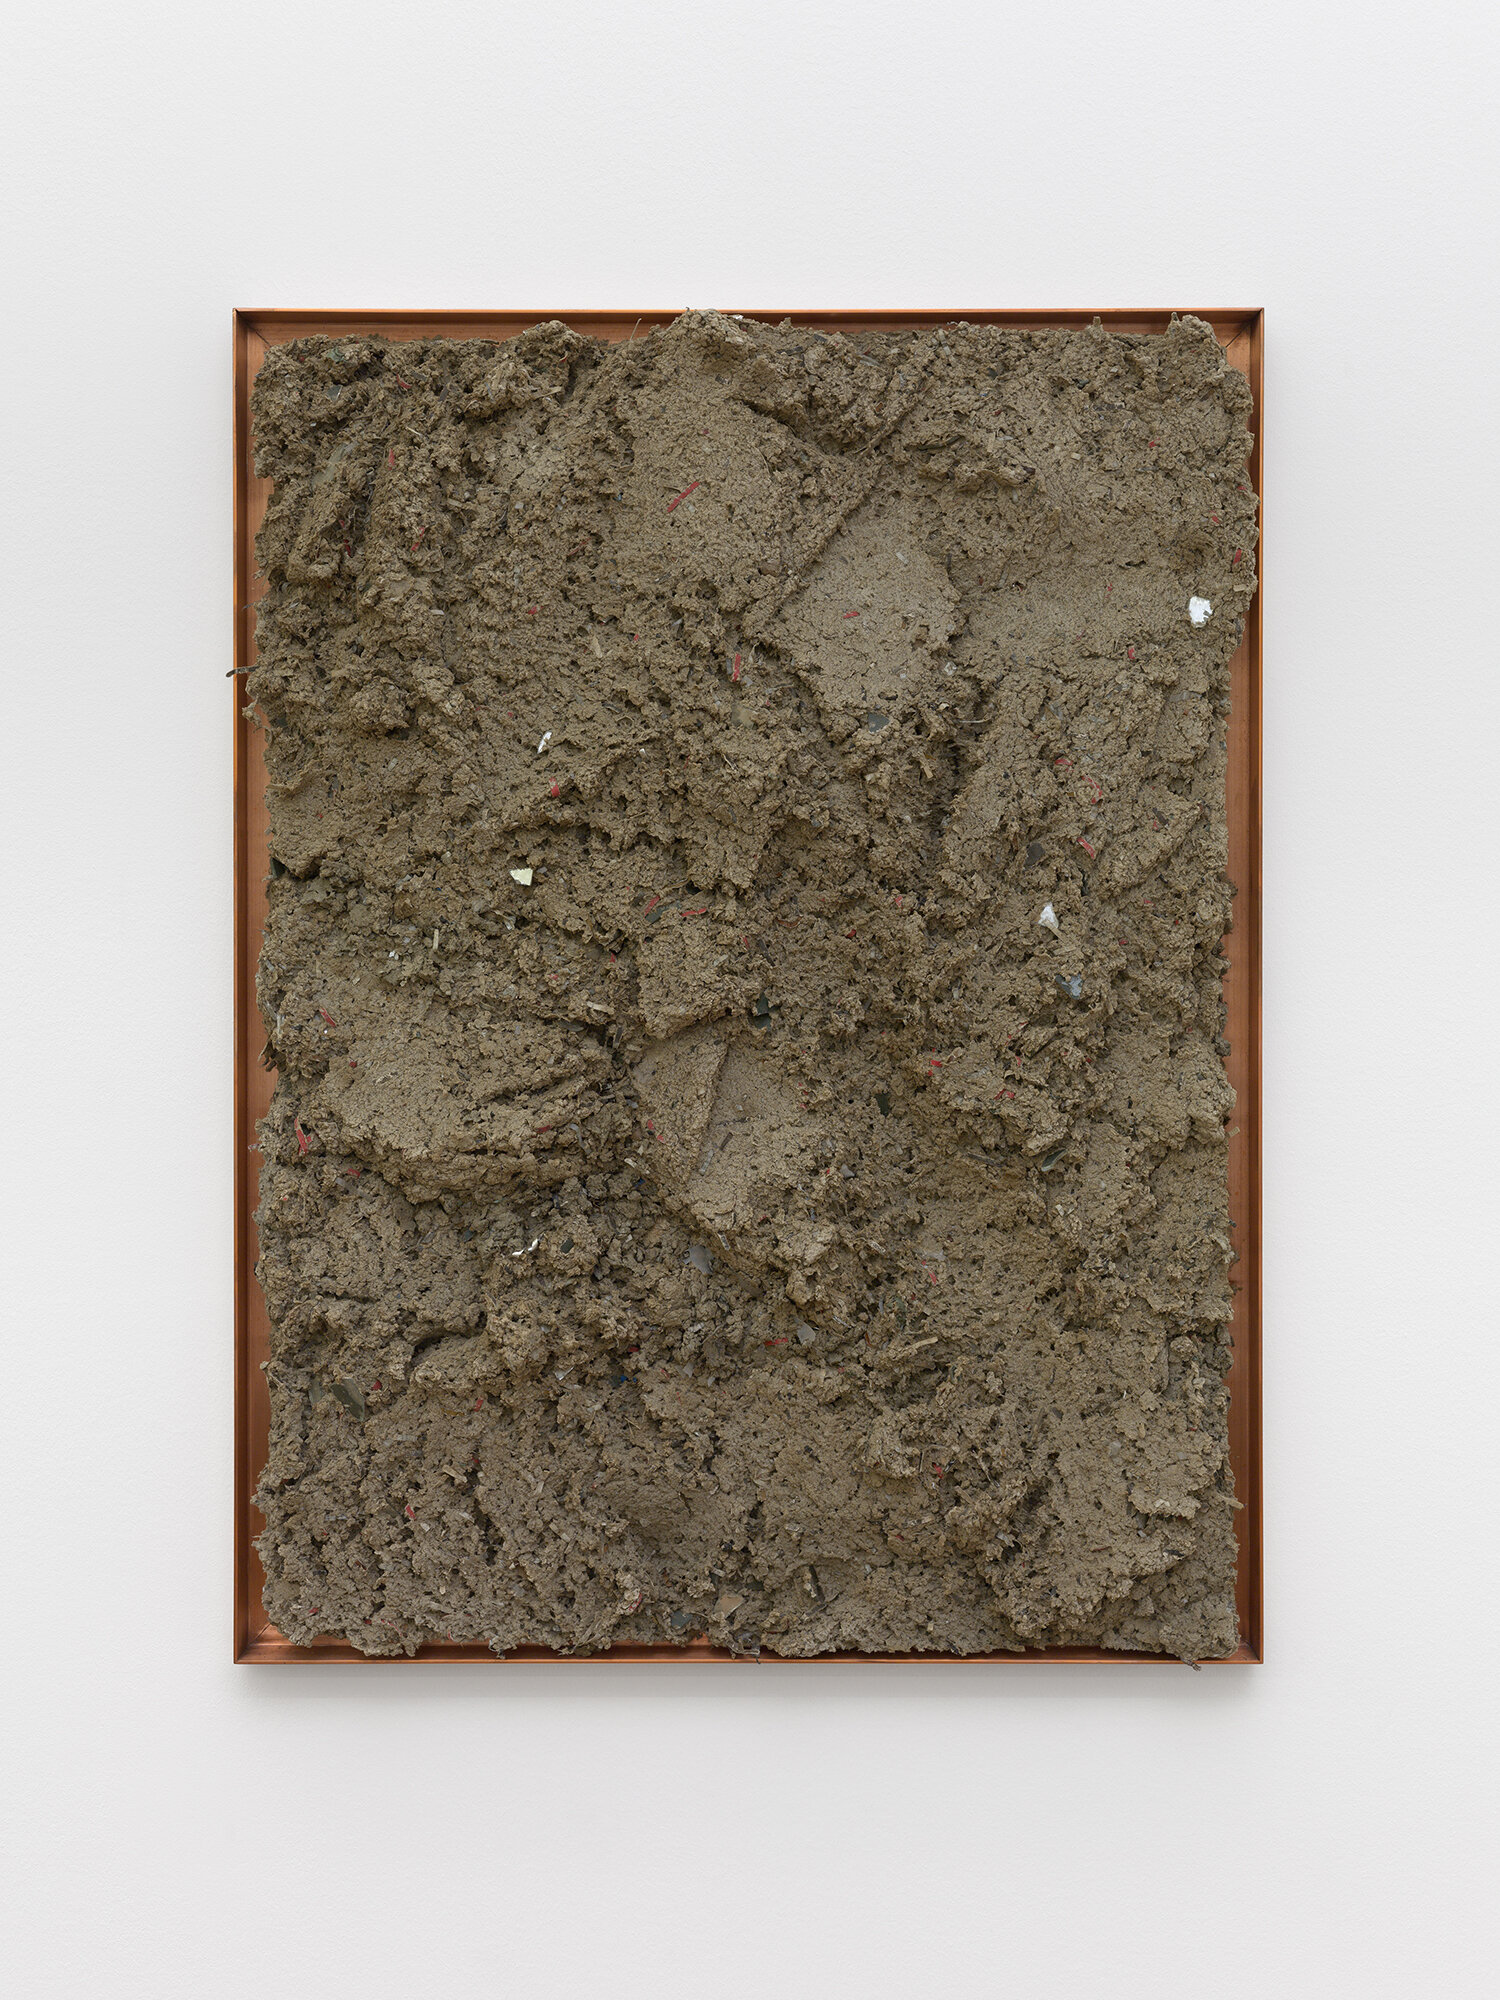 Selected Works (2012–2013/September 5, 2012–March 12, 2013)   2014  Black and white fiber based photographic paper, color photographic paper, and archival inkjet papers  40 x 30 inches   Selected Works, 2008–    Musée d'art moderne et contemporain, 2019